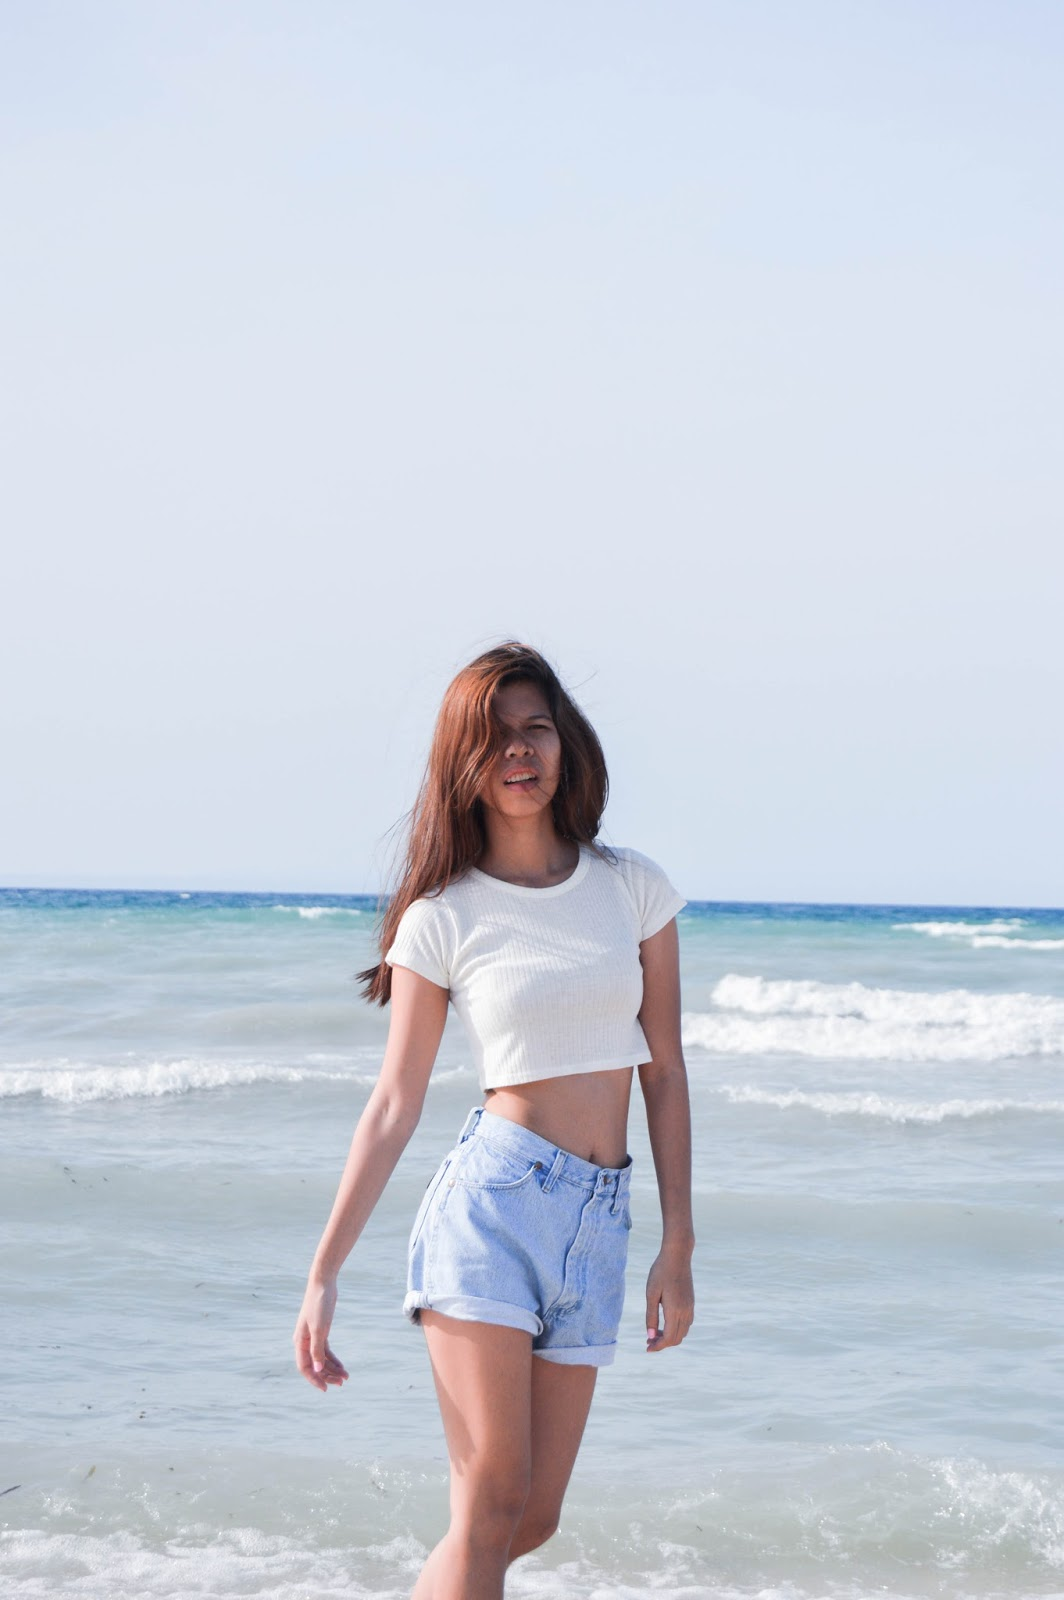 fashion blogger, style blogger, cebu blogger, cebu style blogger, blogger, filipina blogger, cebuana blogger, nested thoughts, katherine cutar, katherine anne cutar, katherineanika, katherine annika, ootd, ootd plipinas, bantayan, bantayan island, topshop, rib knit crop top, crop top, cropped top, rib knit cropped top, wrangler, wrangler ph,